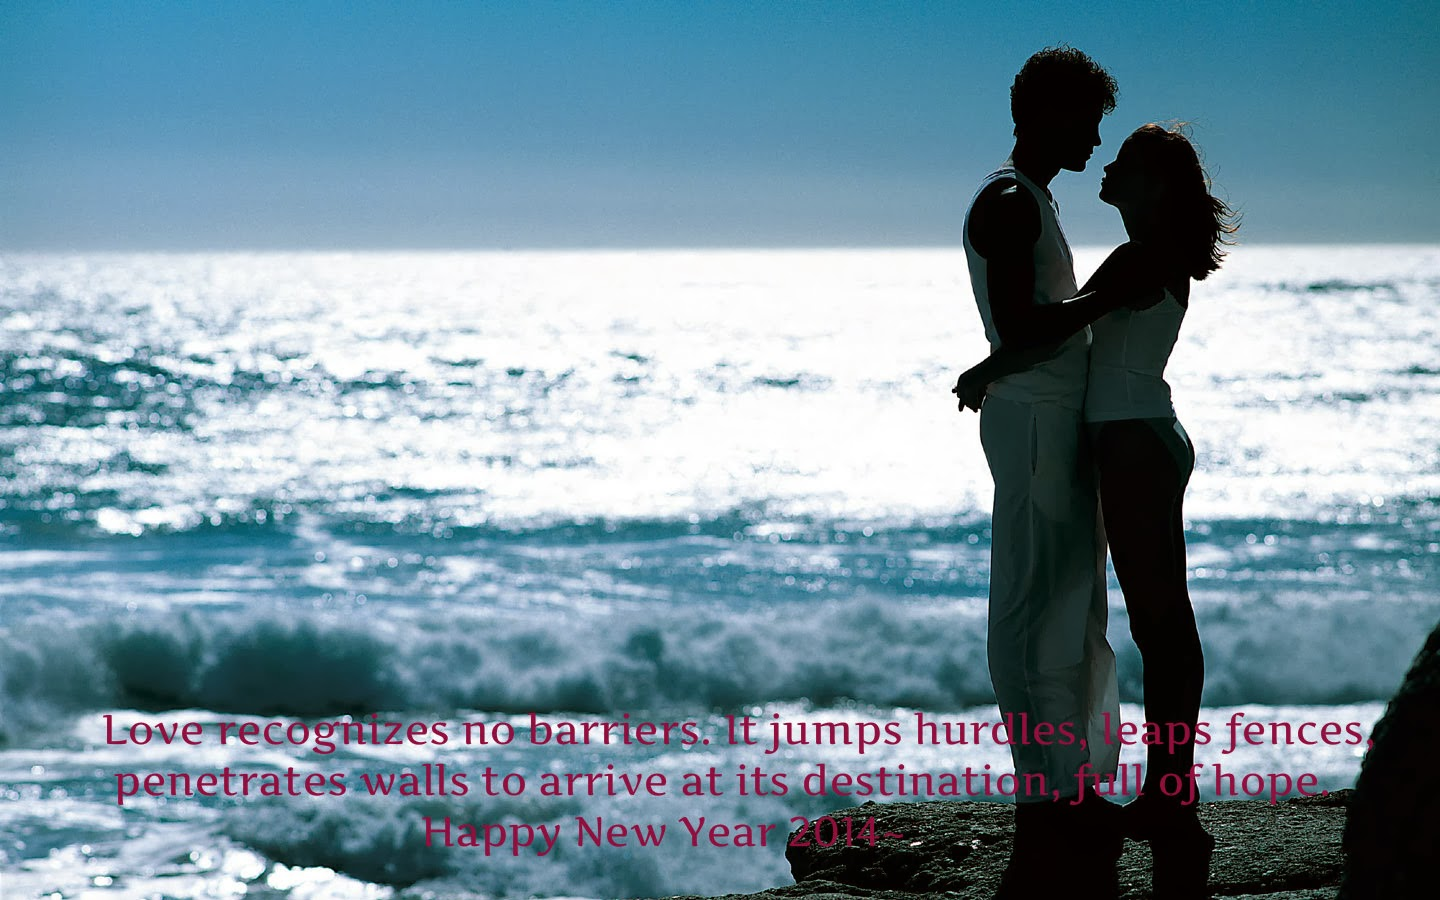 New Year Quotes For My Love: Happy New Year Quotes For Girlfriend